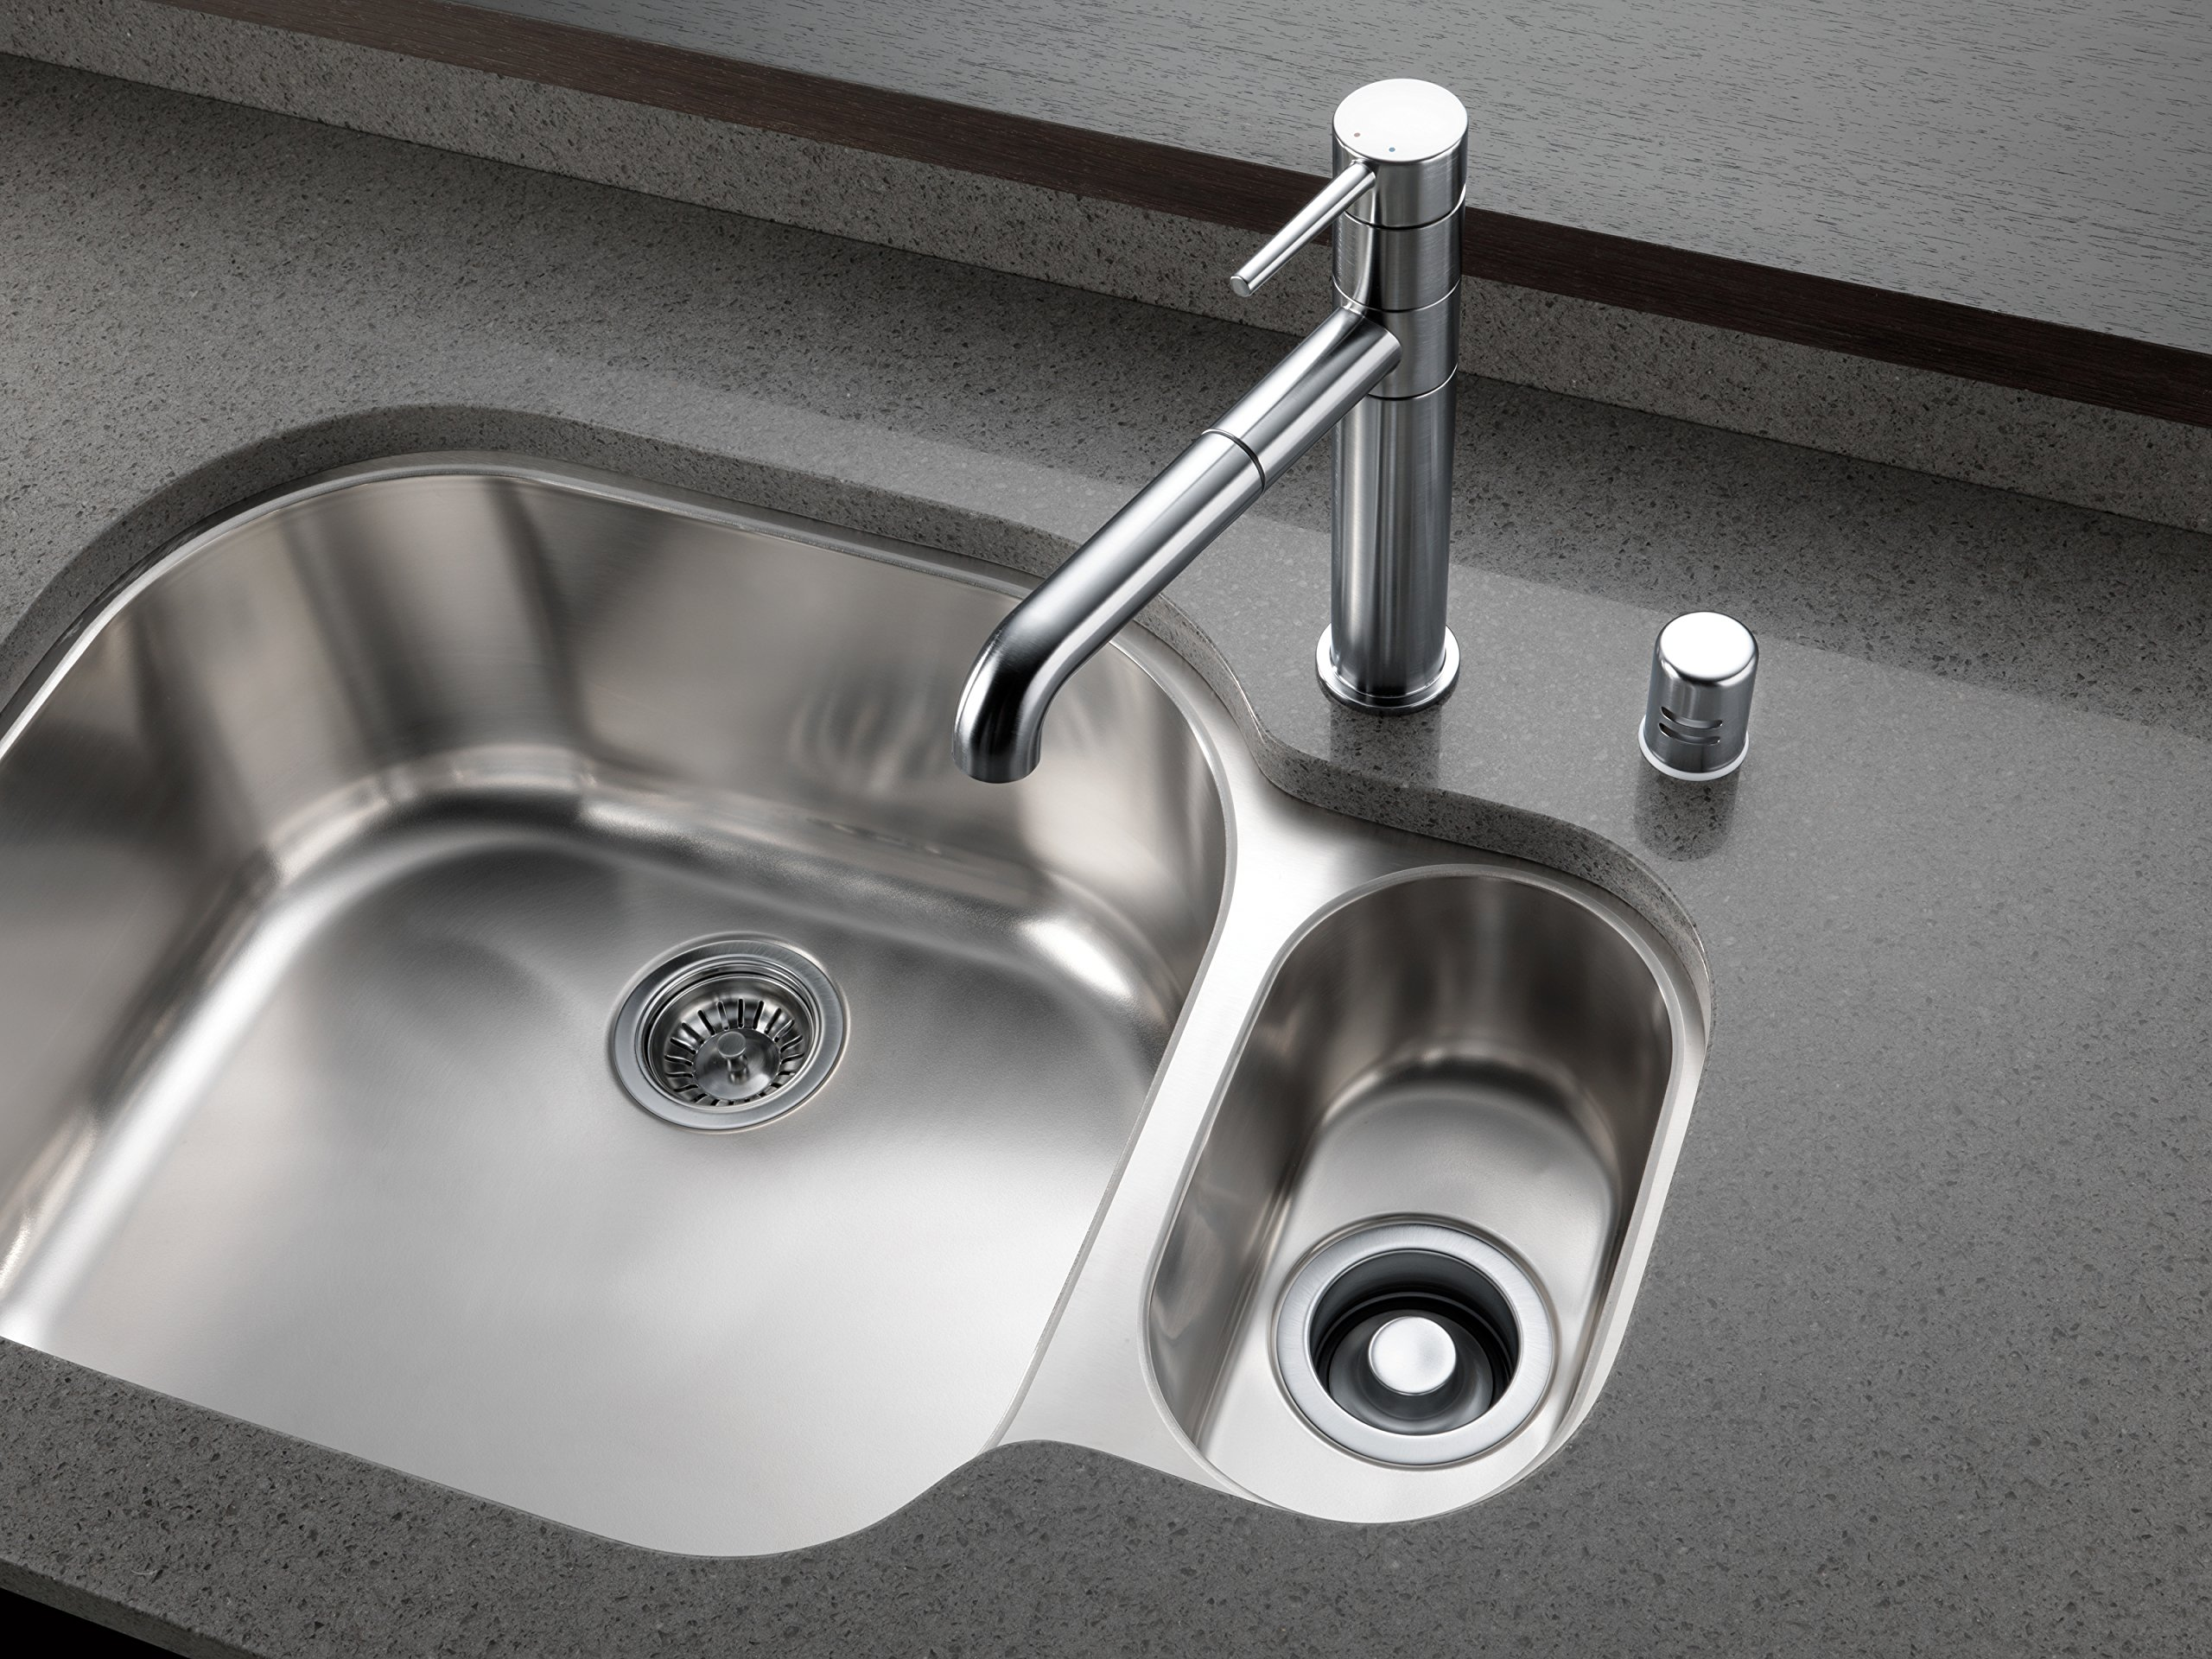 Delta Faucet 72010-AR Flange and Strainer Kitchen Sink, Arctic Stainless by DELTA FAUCET (Image #1)